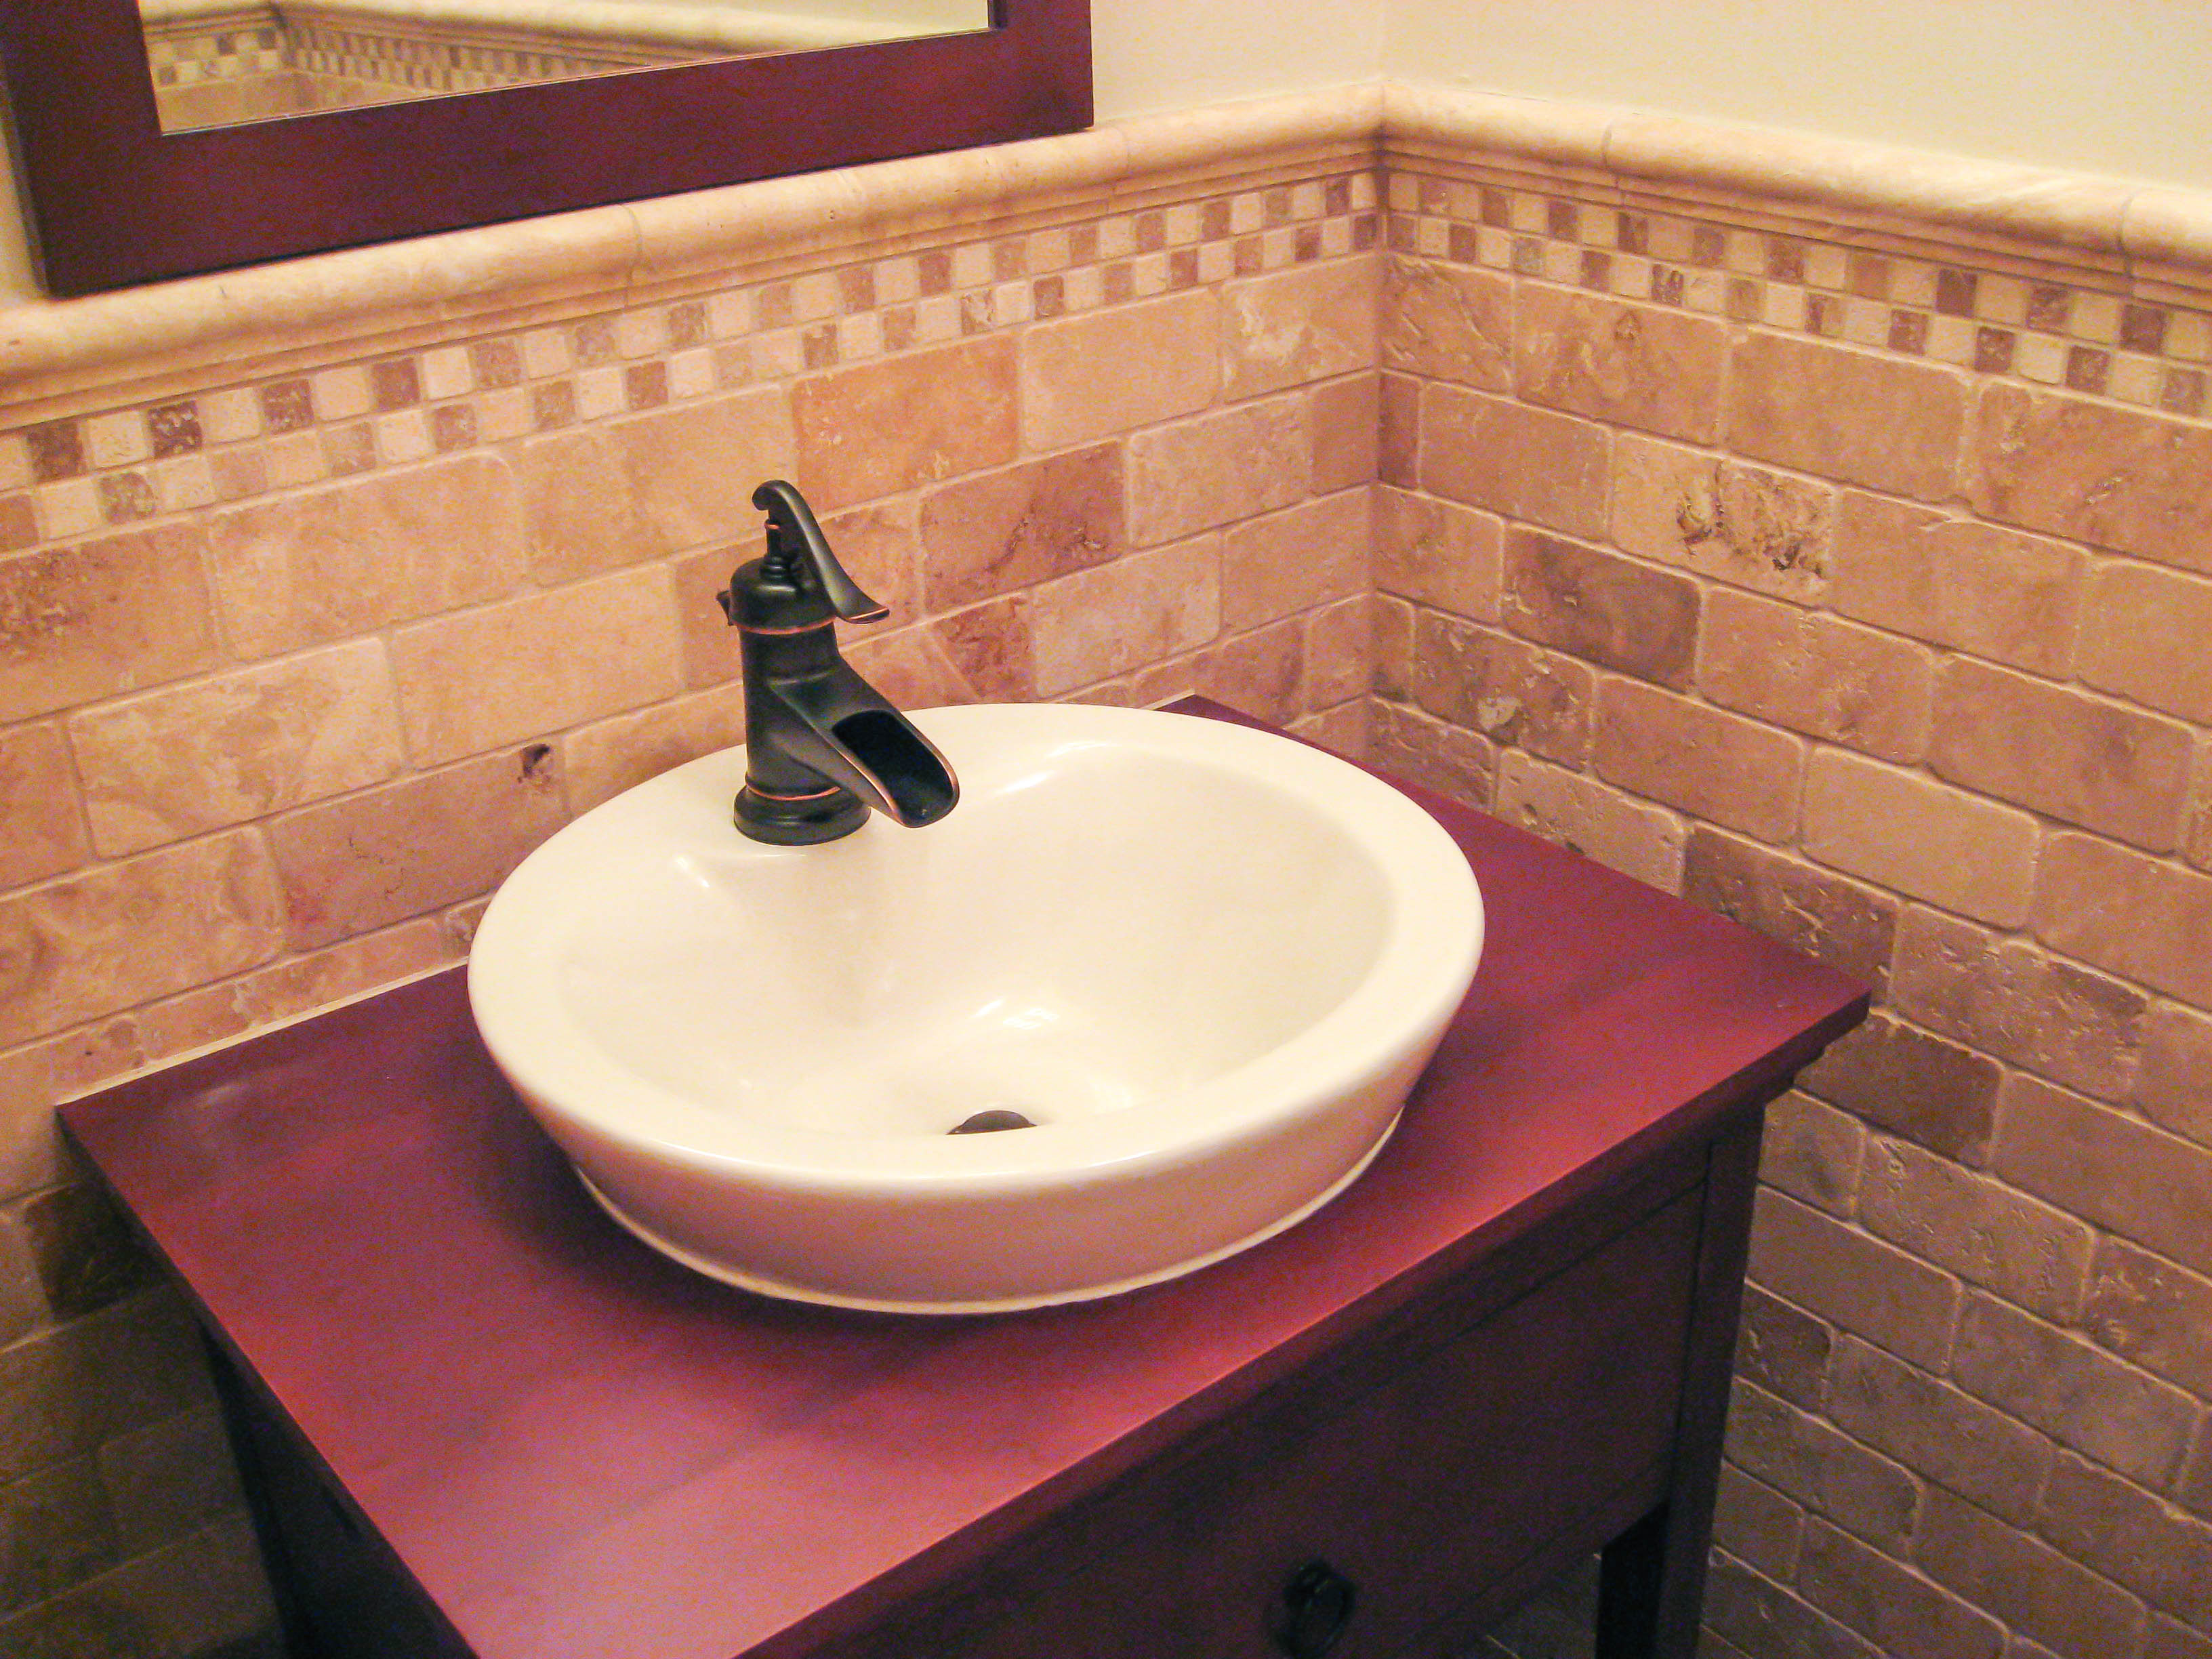 Bathroom Wainscoting Gallery - Tile Contractor | IRC Tiles Services